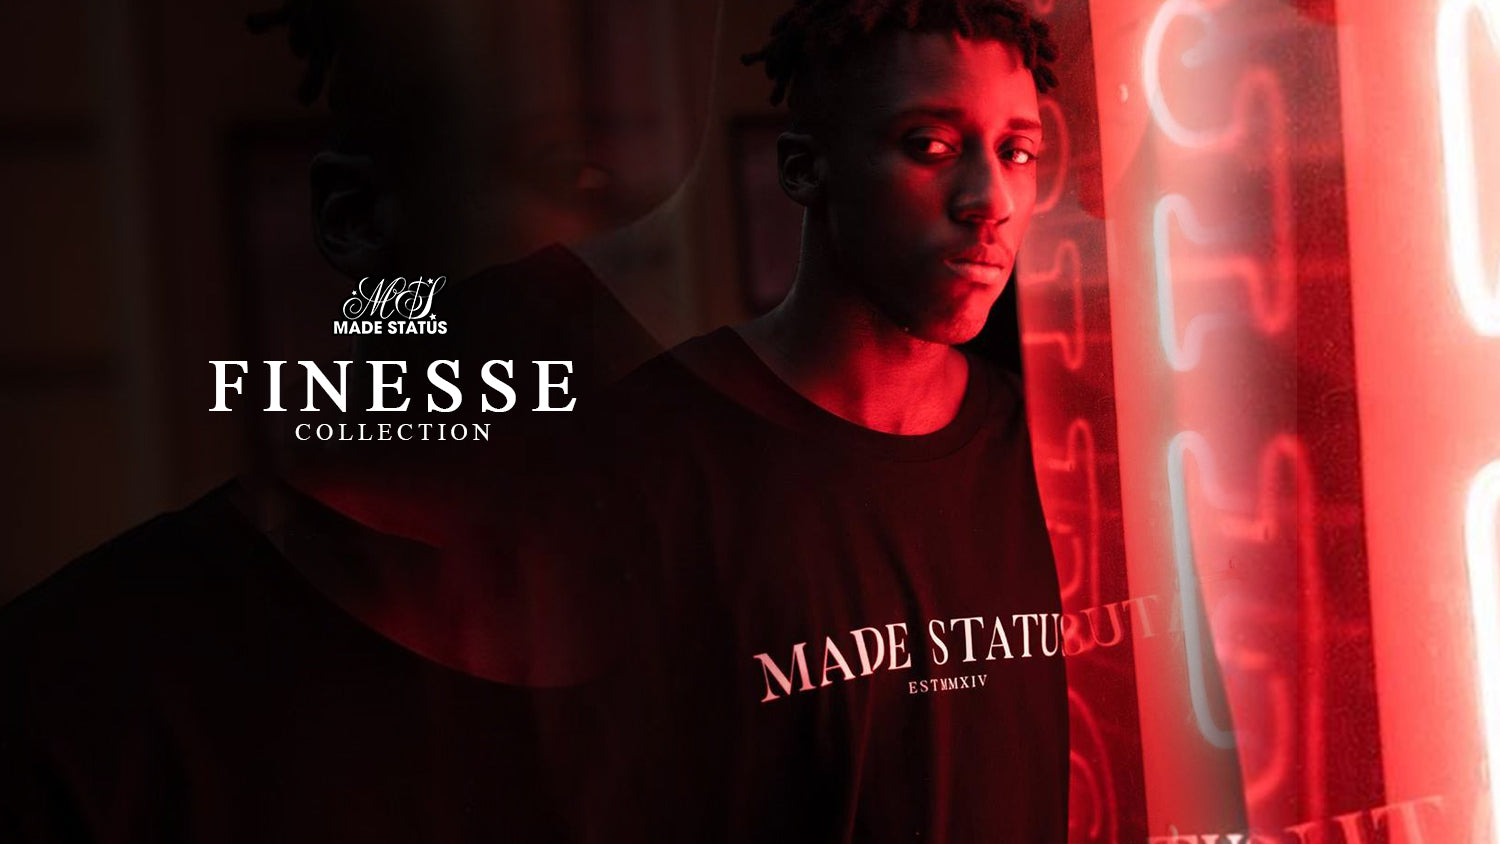 Made Status Finesse Collection